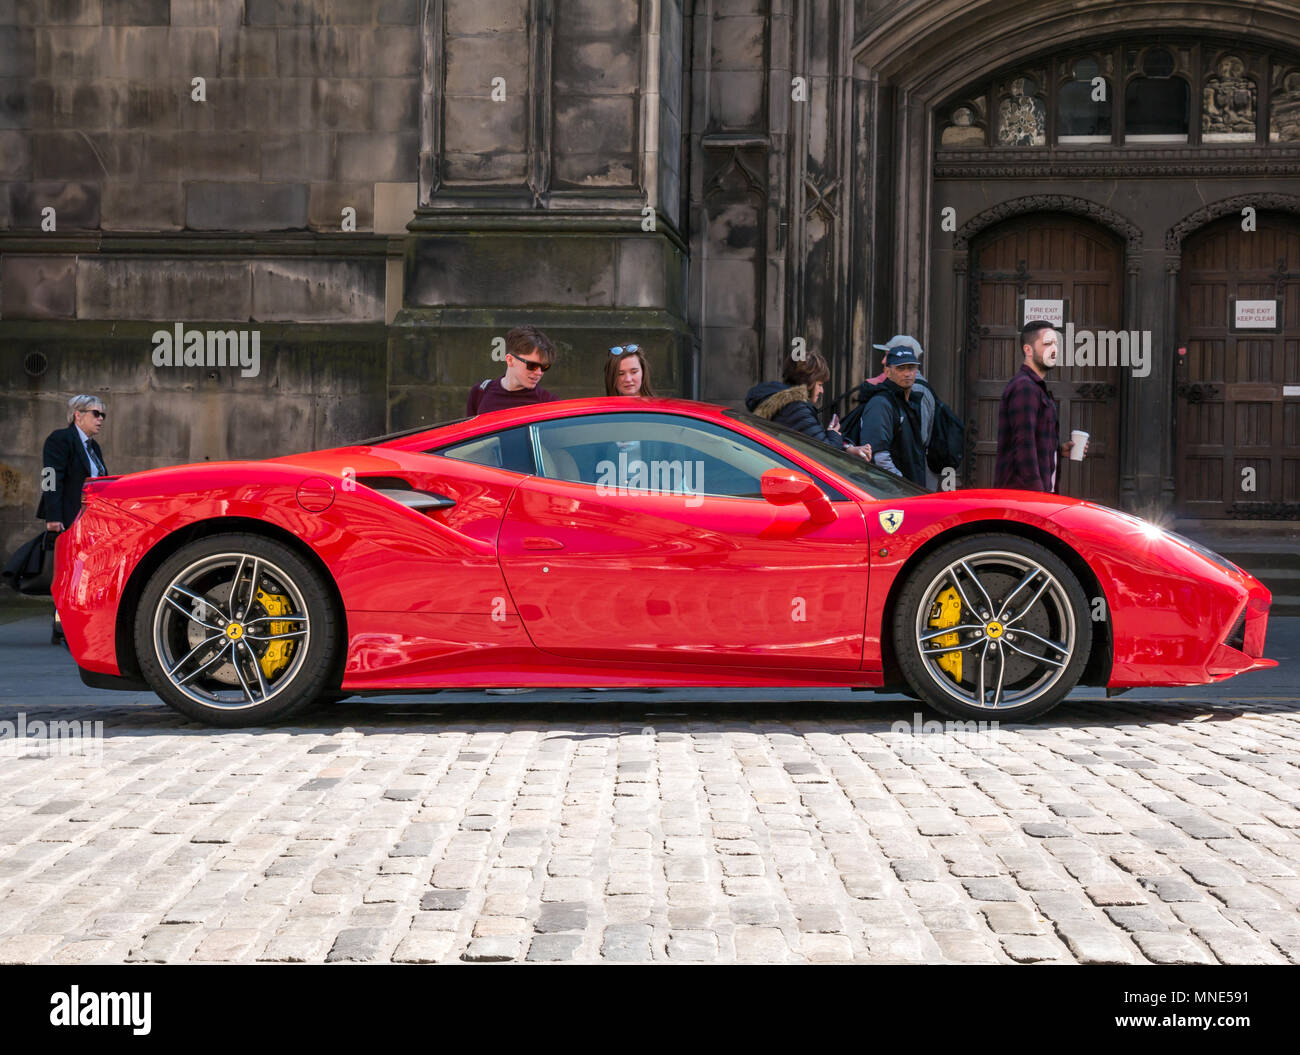 royal-mile-edinburgh-16th-may-2018-touri